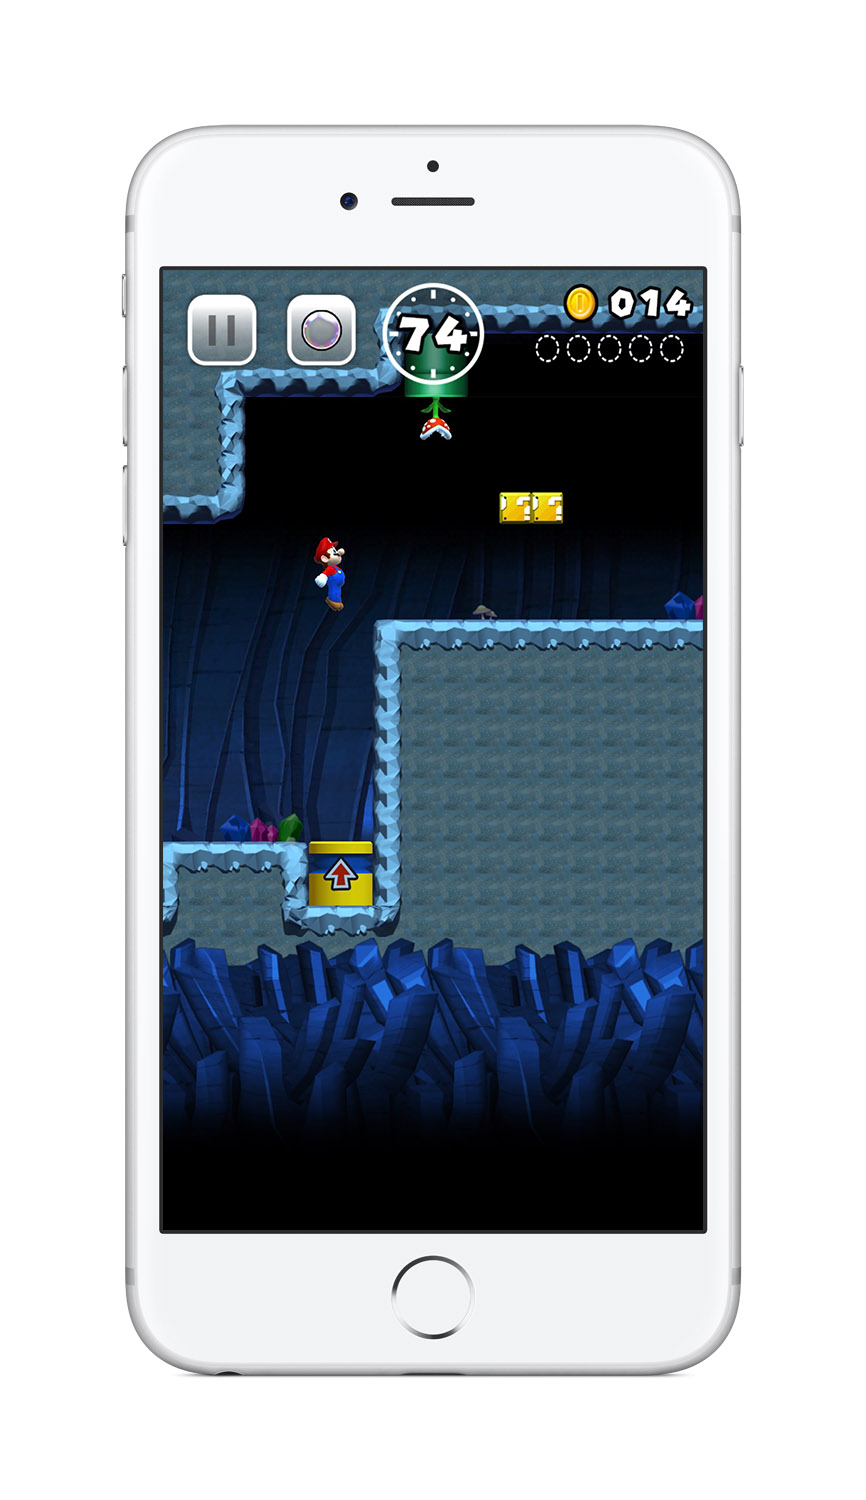 smdp_zar_imge_03_2_iphone_silver_r_ad